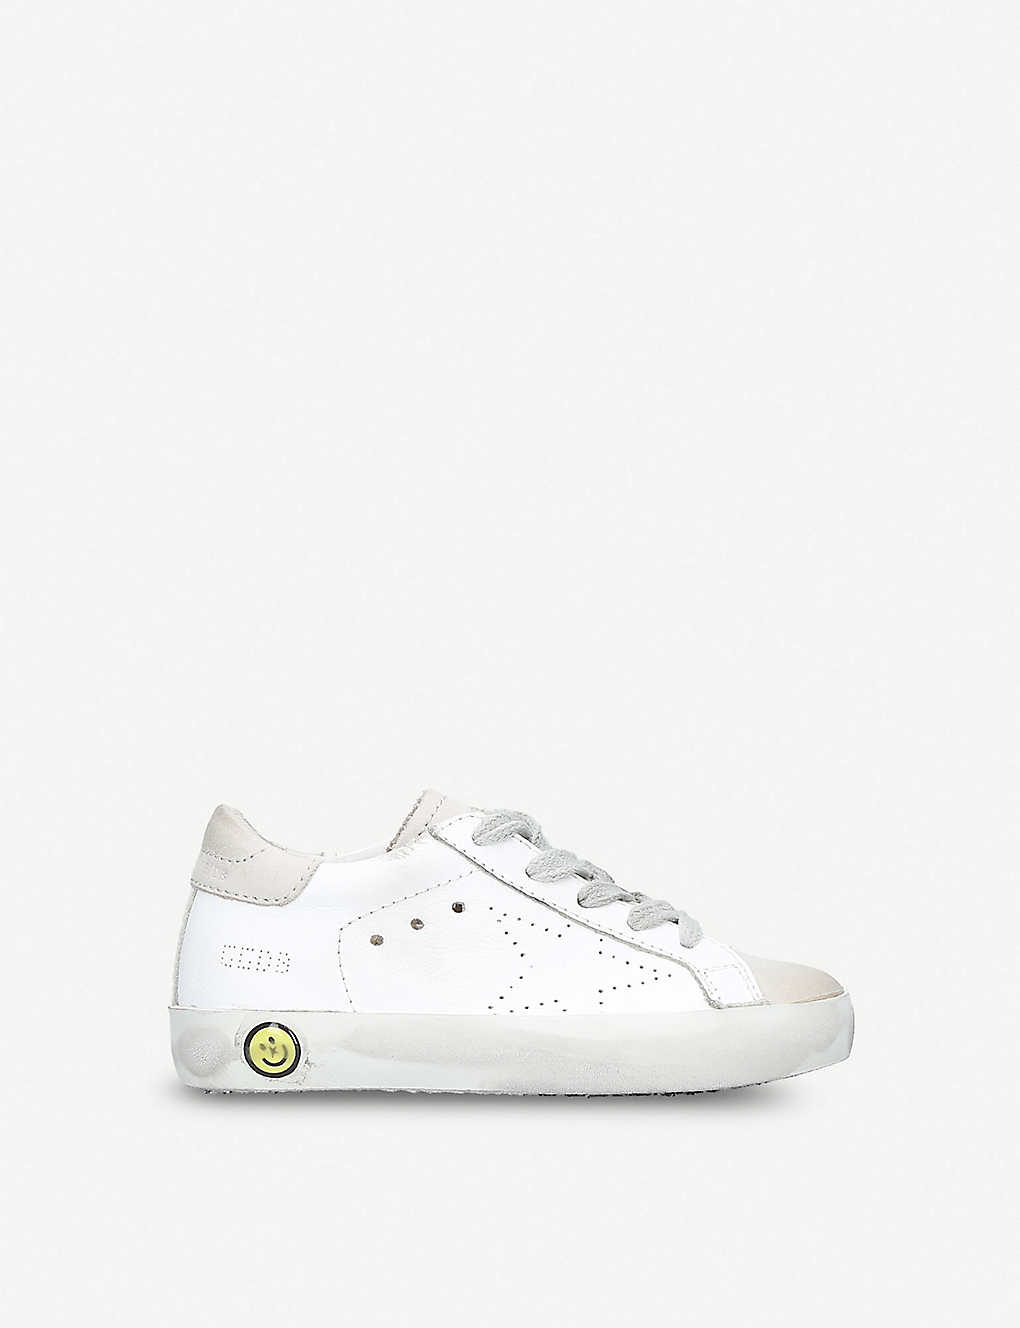 a7fa7432d092f GOLDEN GOOSE - Superstar leather trainers 1-5 years | Selfridges.com